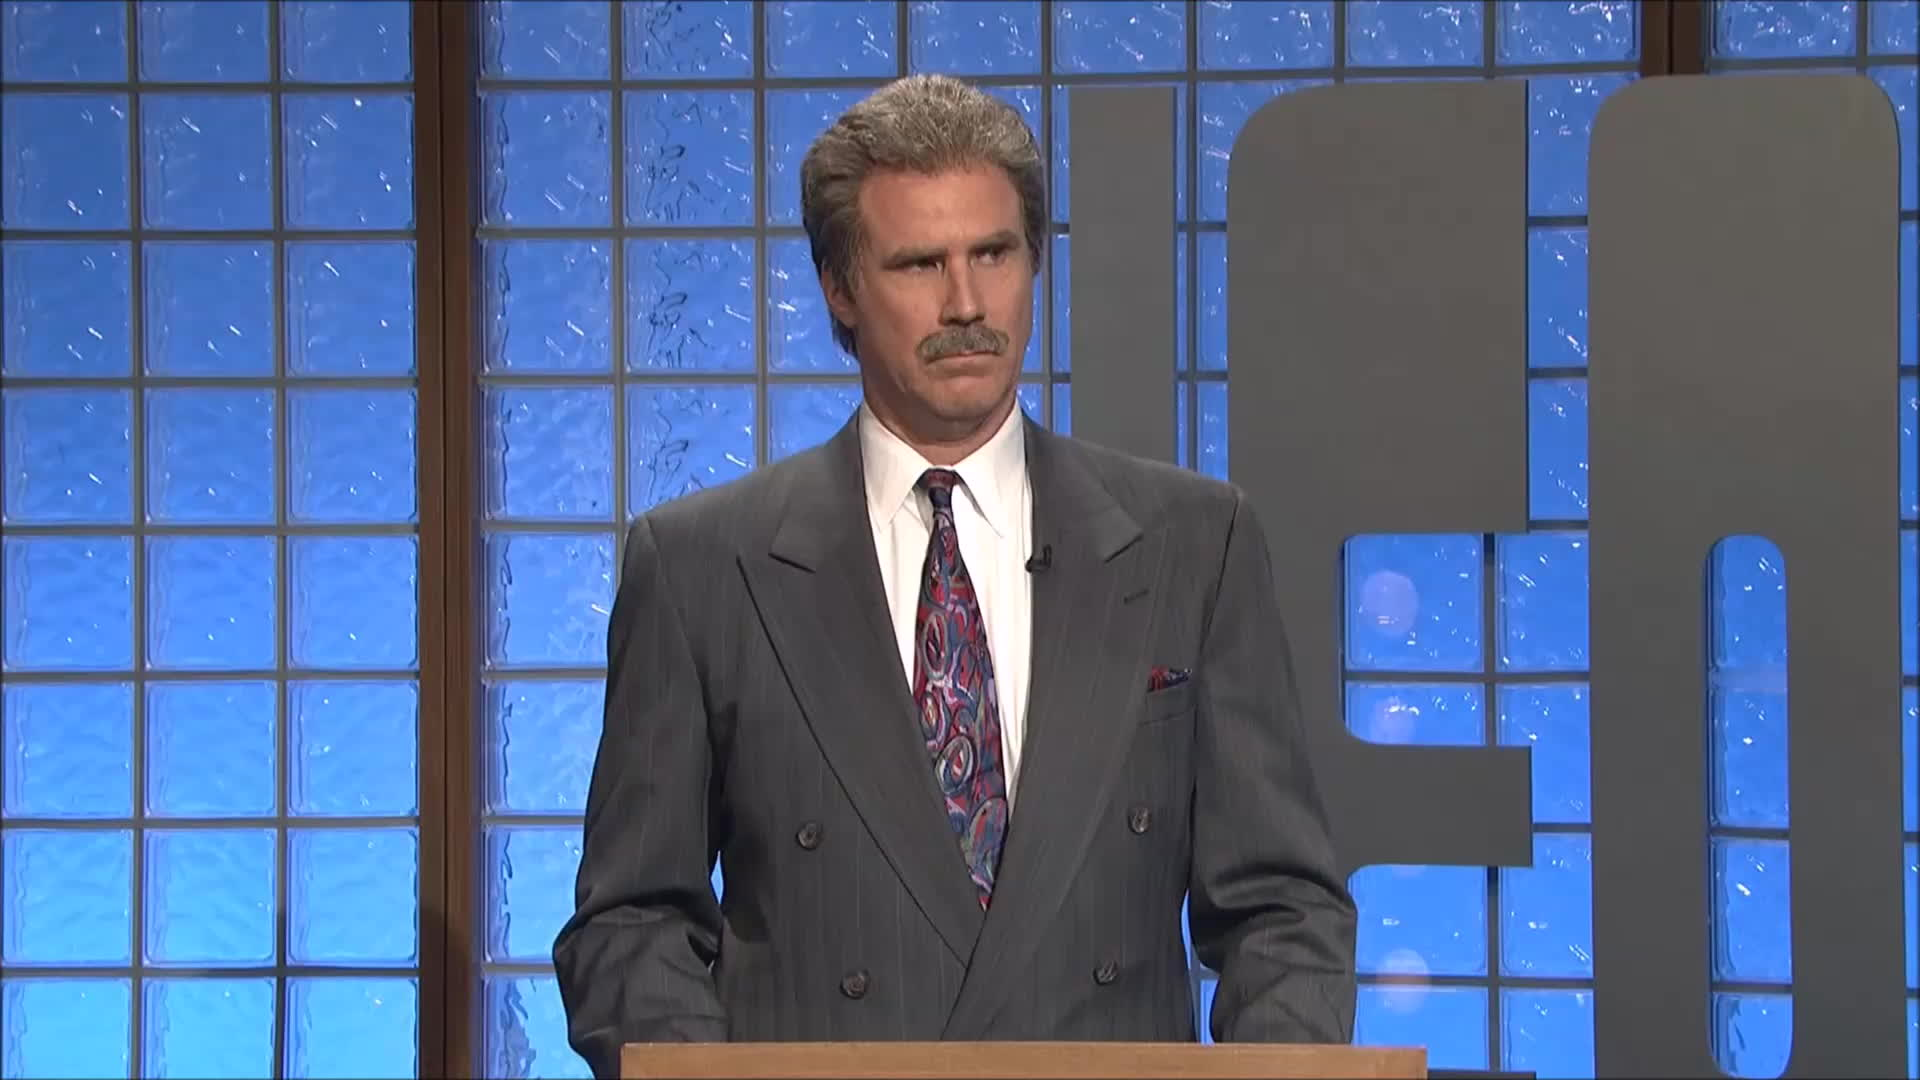 Will Ferrell, snl, speechless, willferrell, Will Ferrell Speechless SNL GIFs